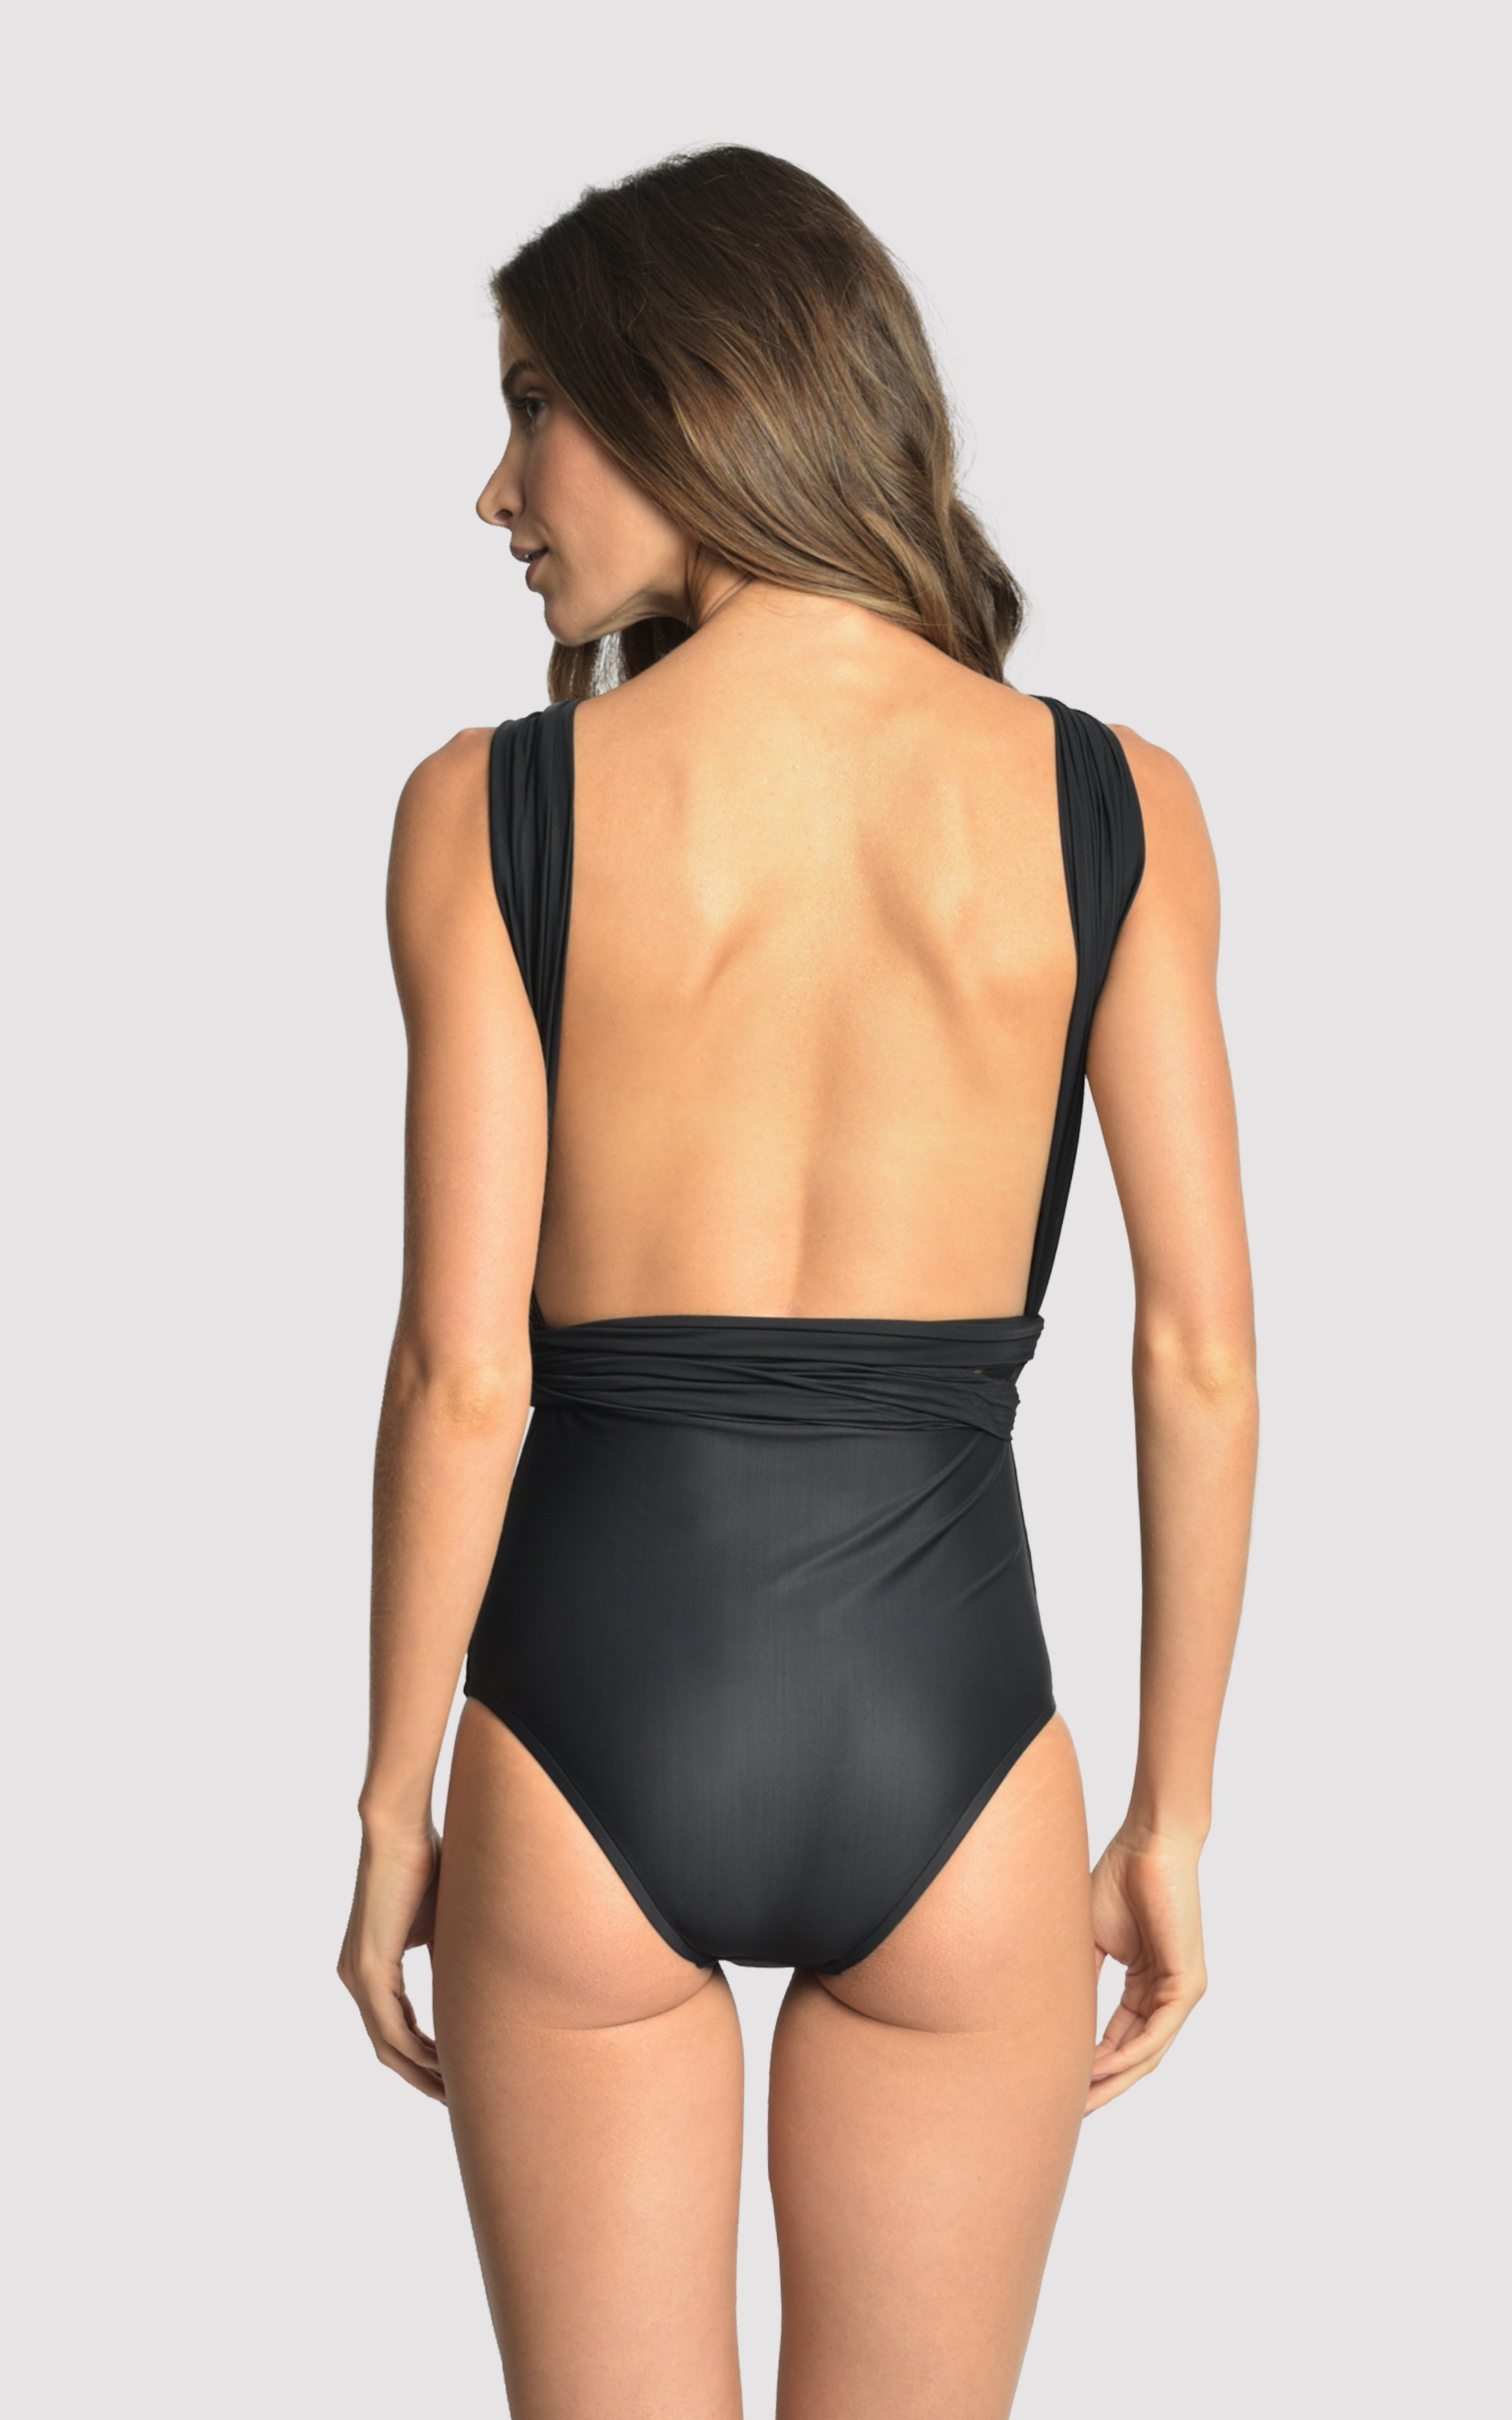 Chic Halter One Piece Swimsuit in Black